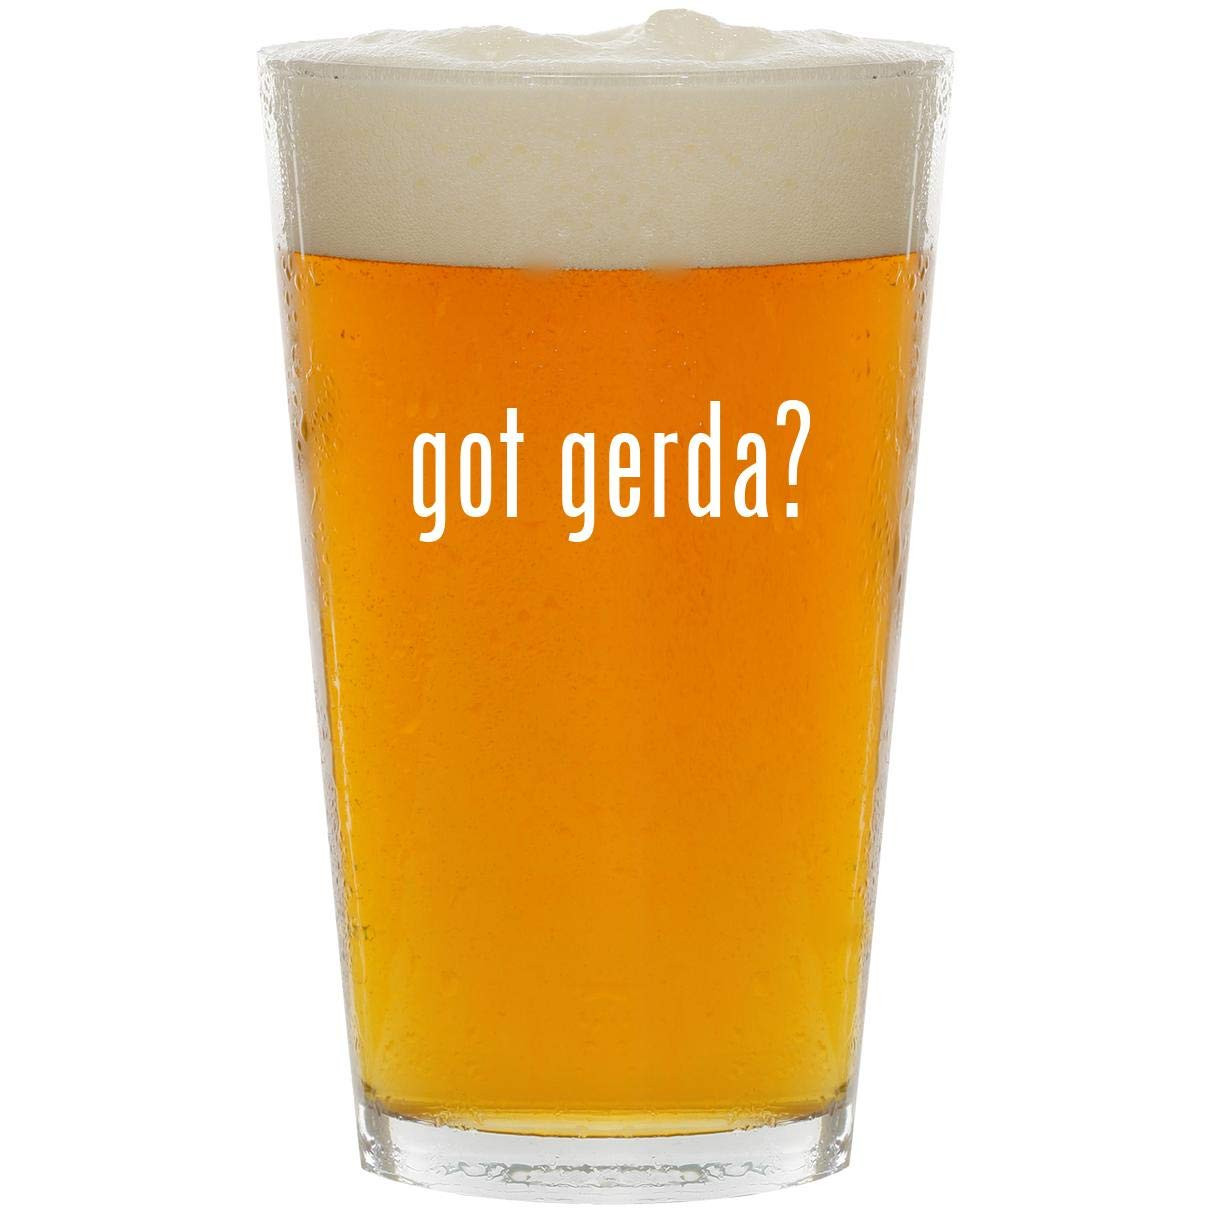 got gerda? - Glass 16oz Beer Pint by Molandra Products